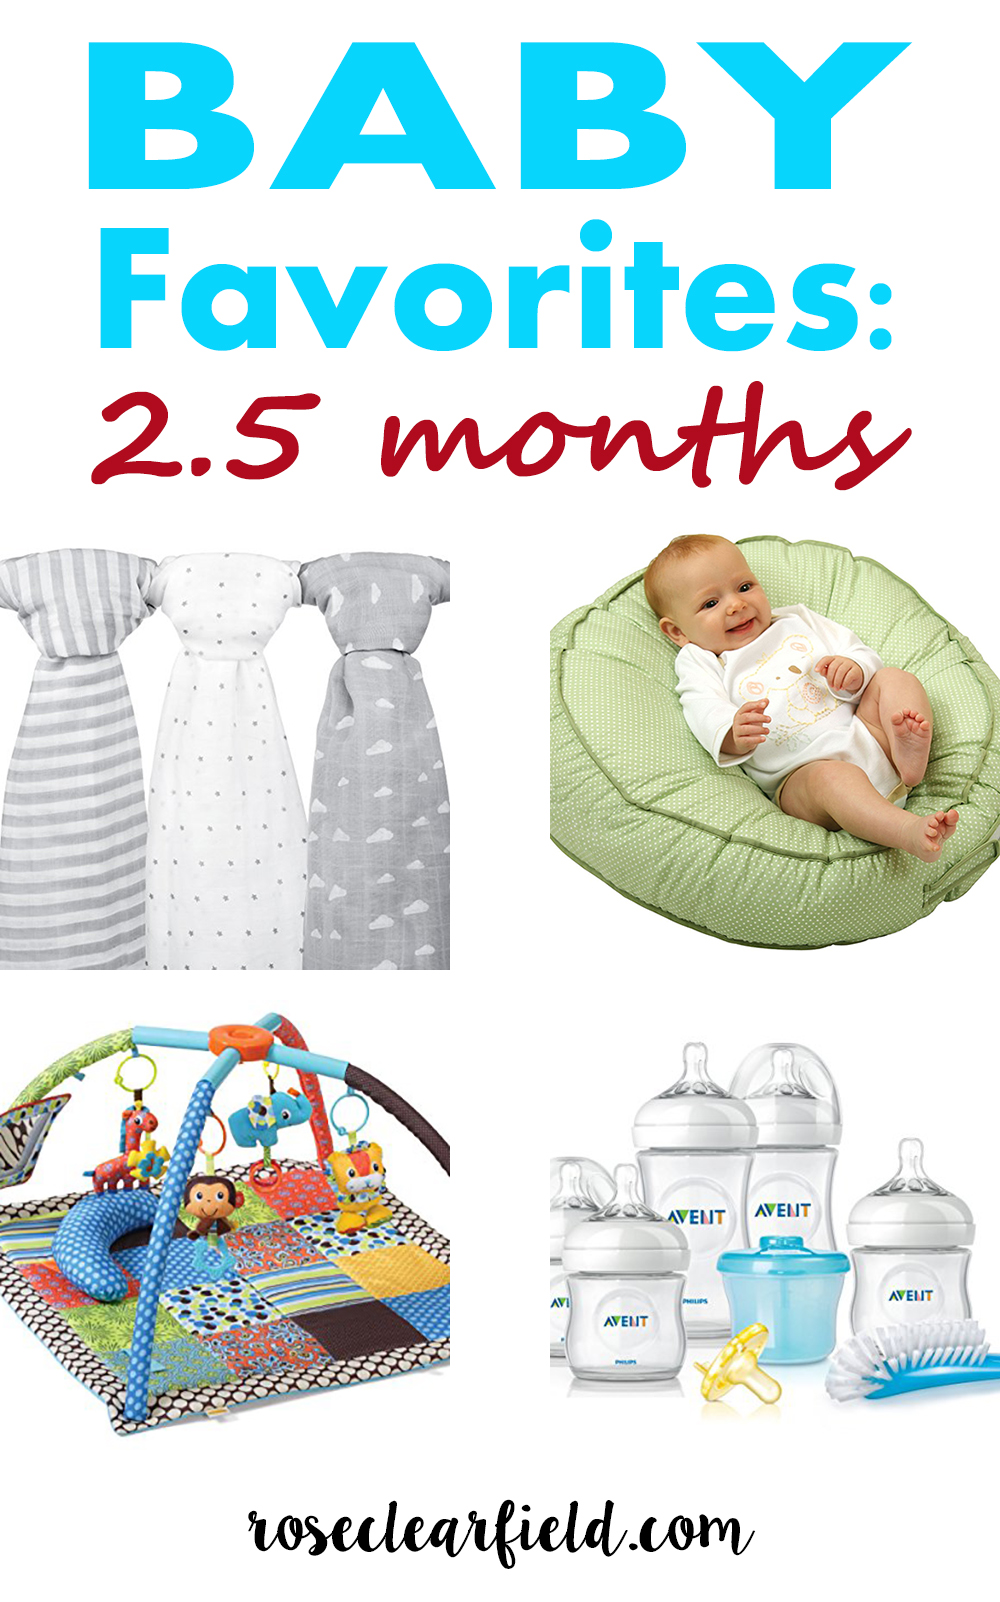 Baby Favorites: 2.5 Months | http://www.roseclearfield.com